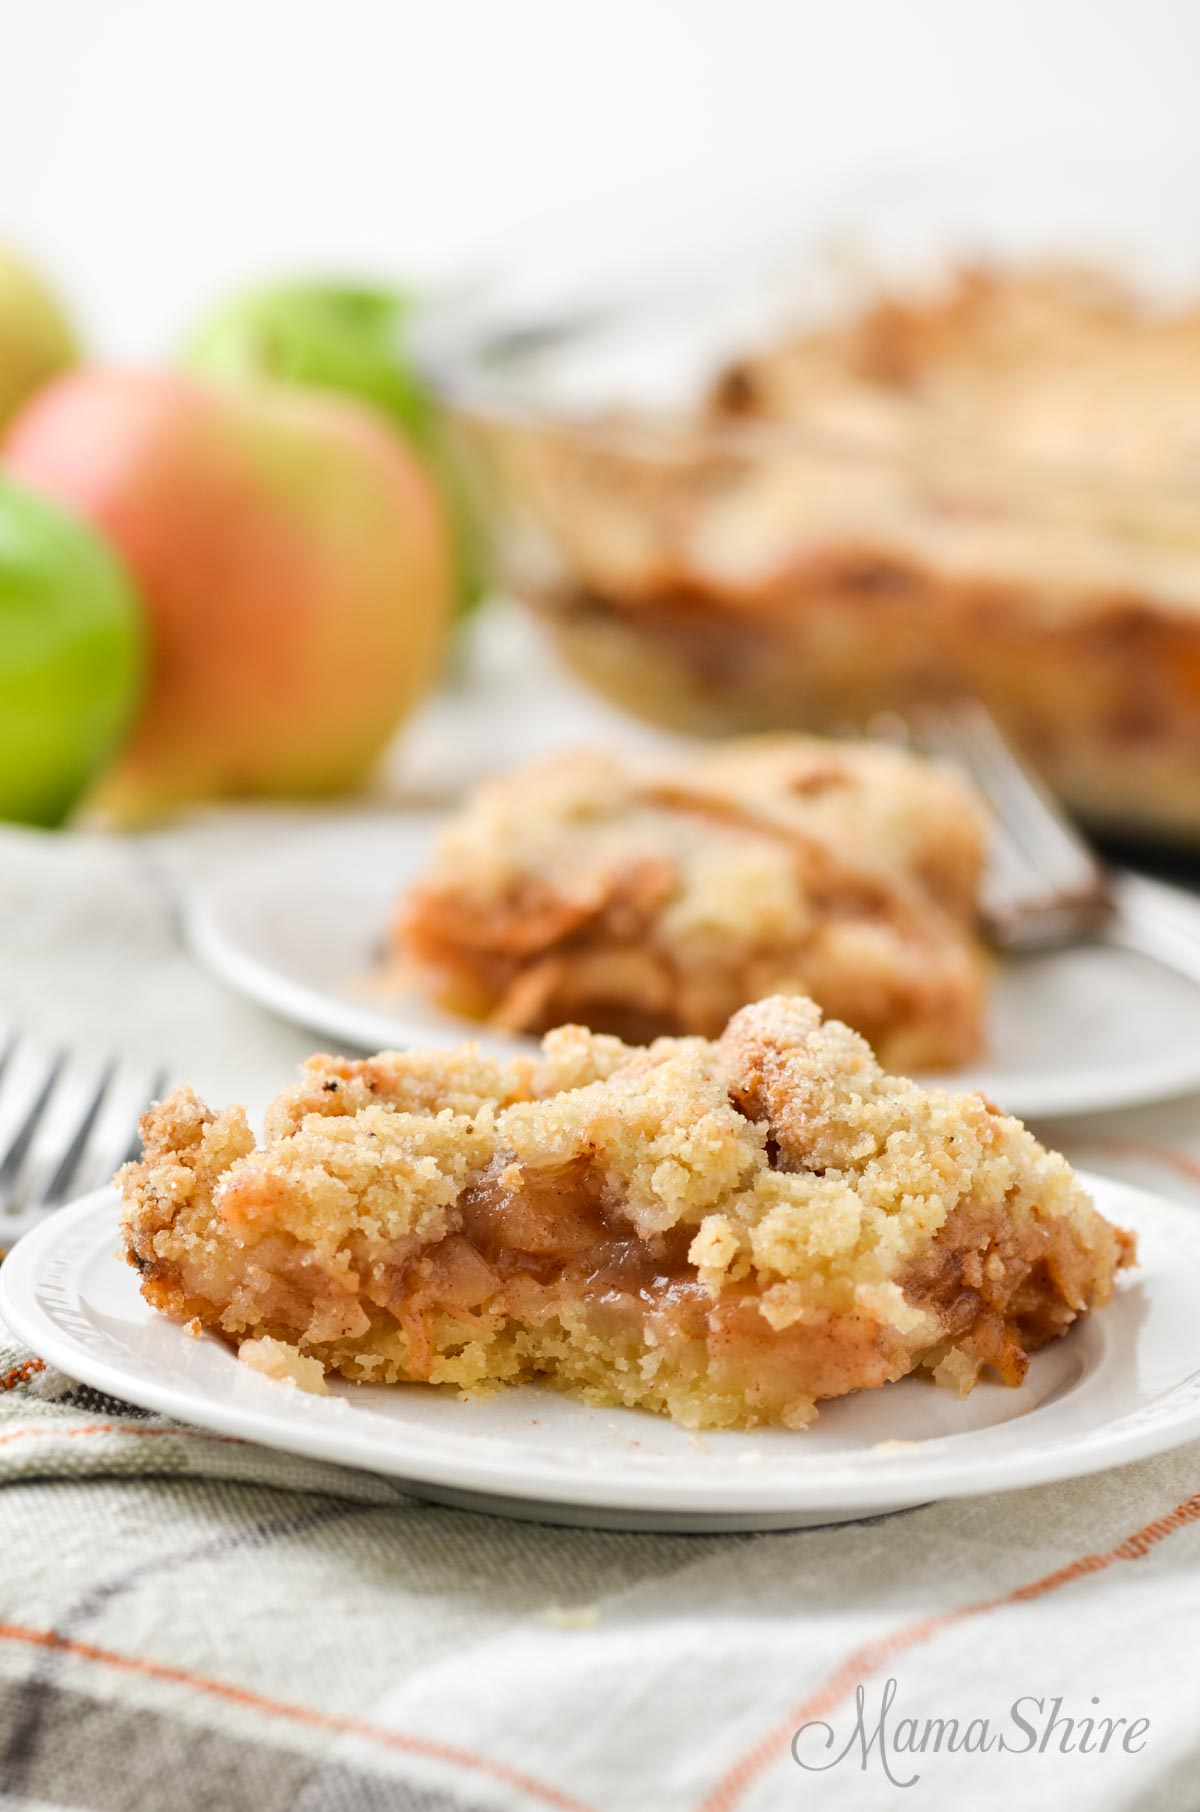 Gluten-free apple slab pie on a white plate with a few apples in the background.